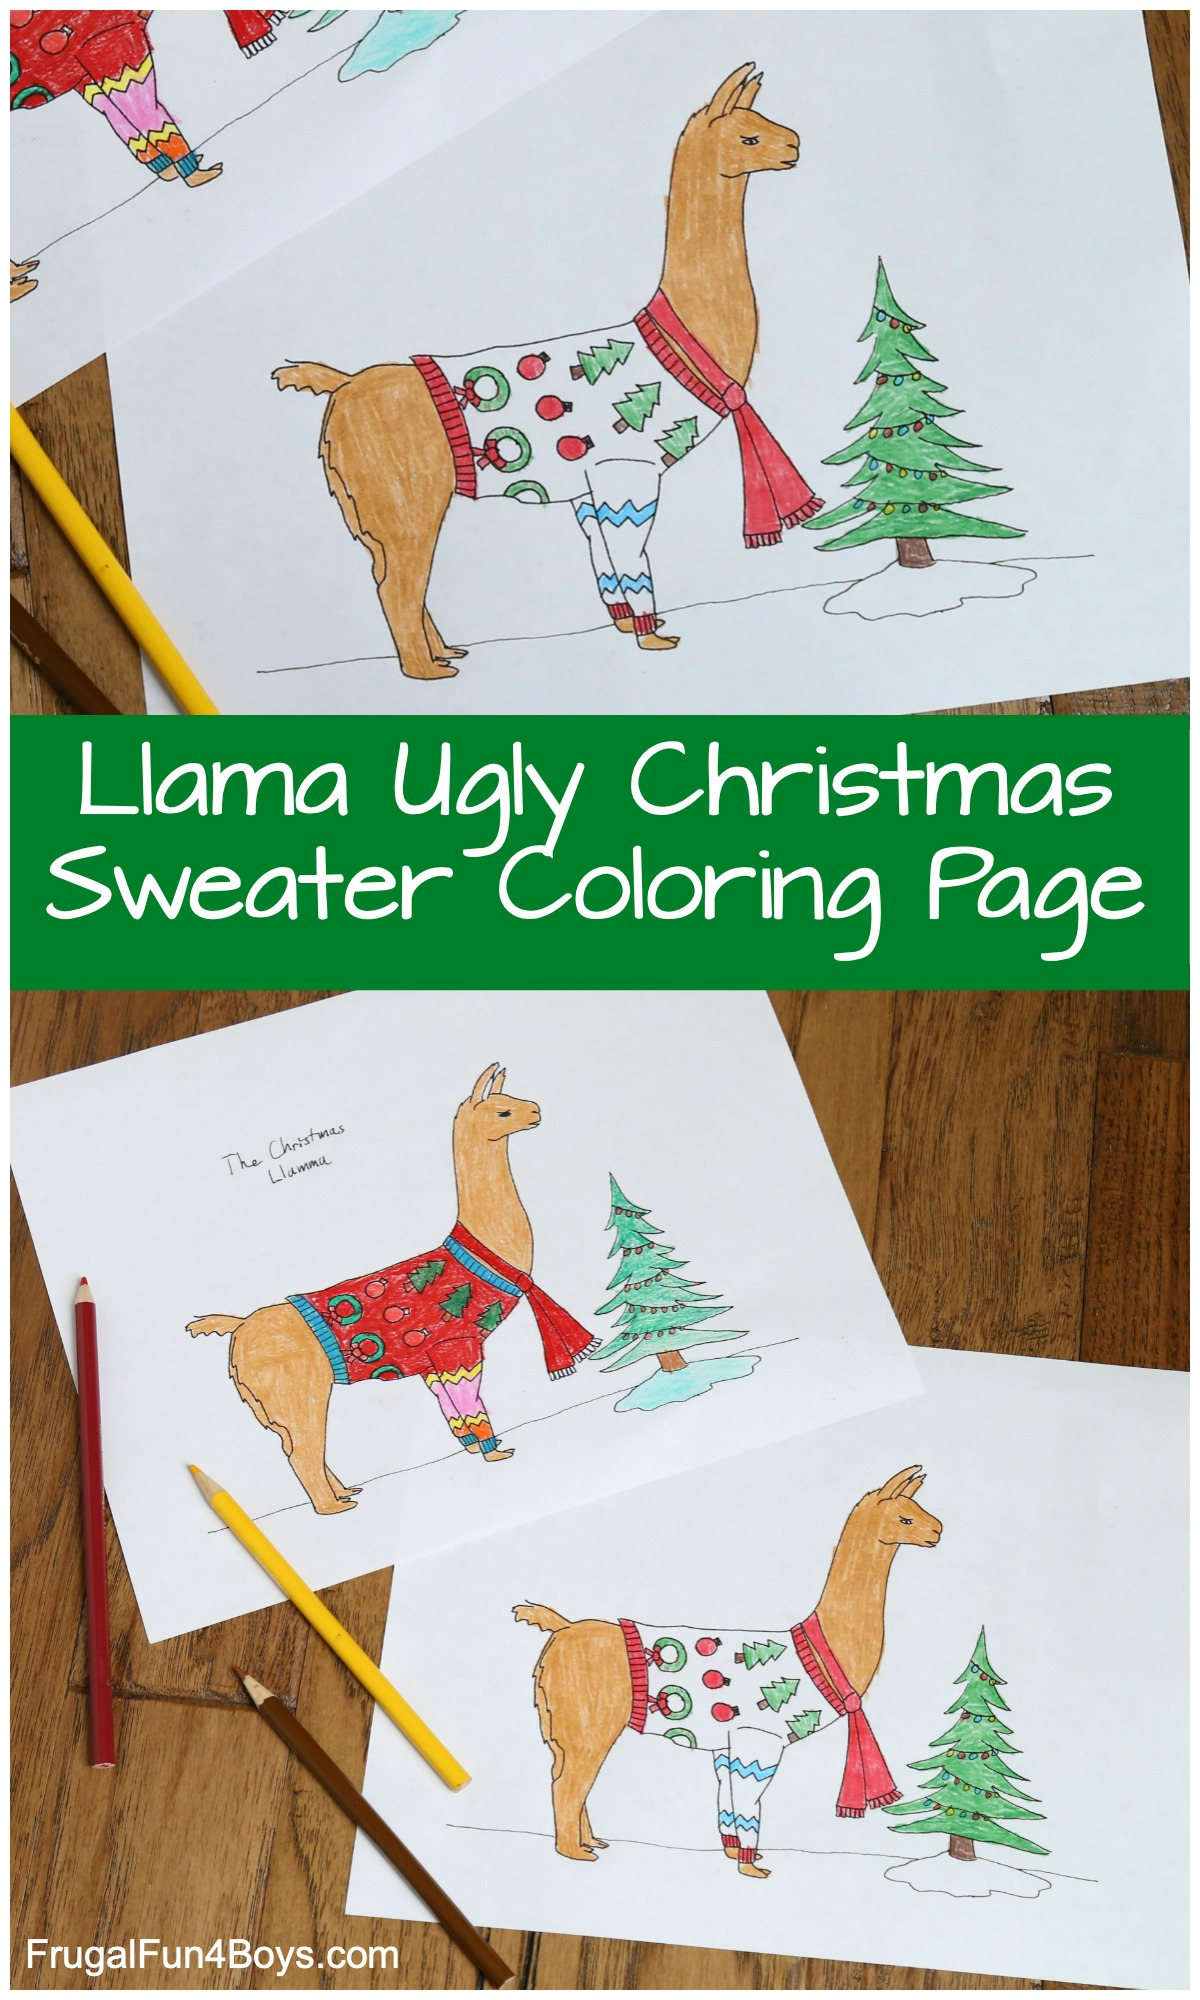 Llama Ugly Sweater Christmas Coloring Page Frugal Fun For Boys